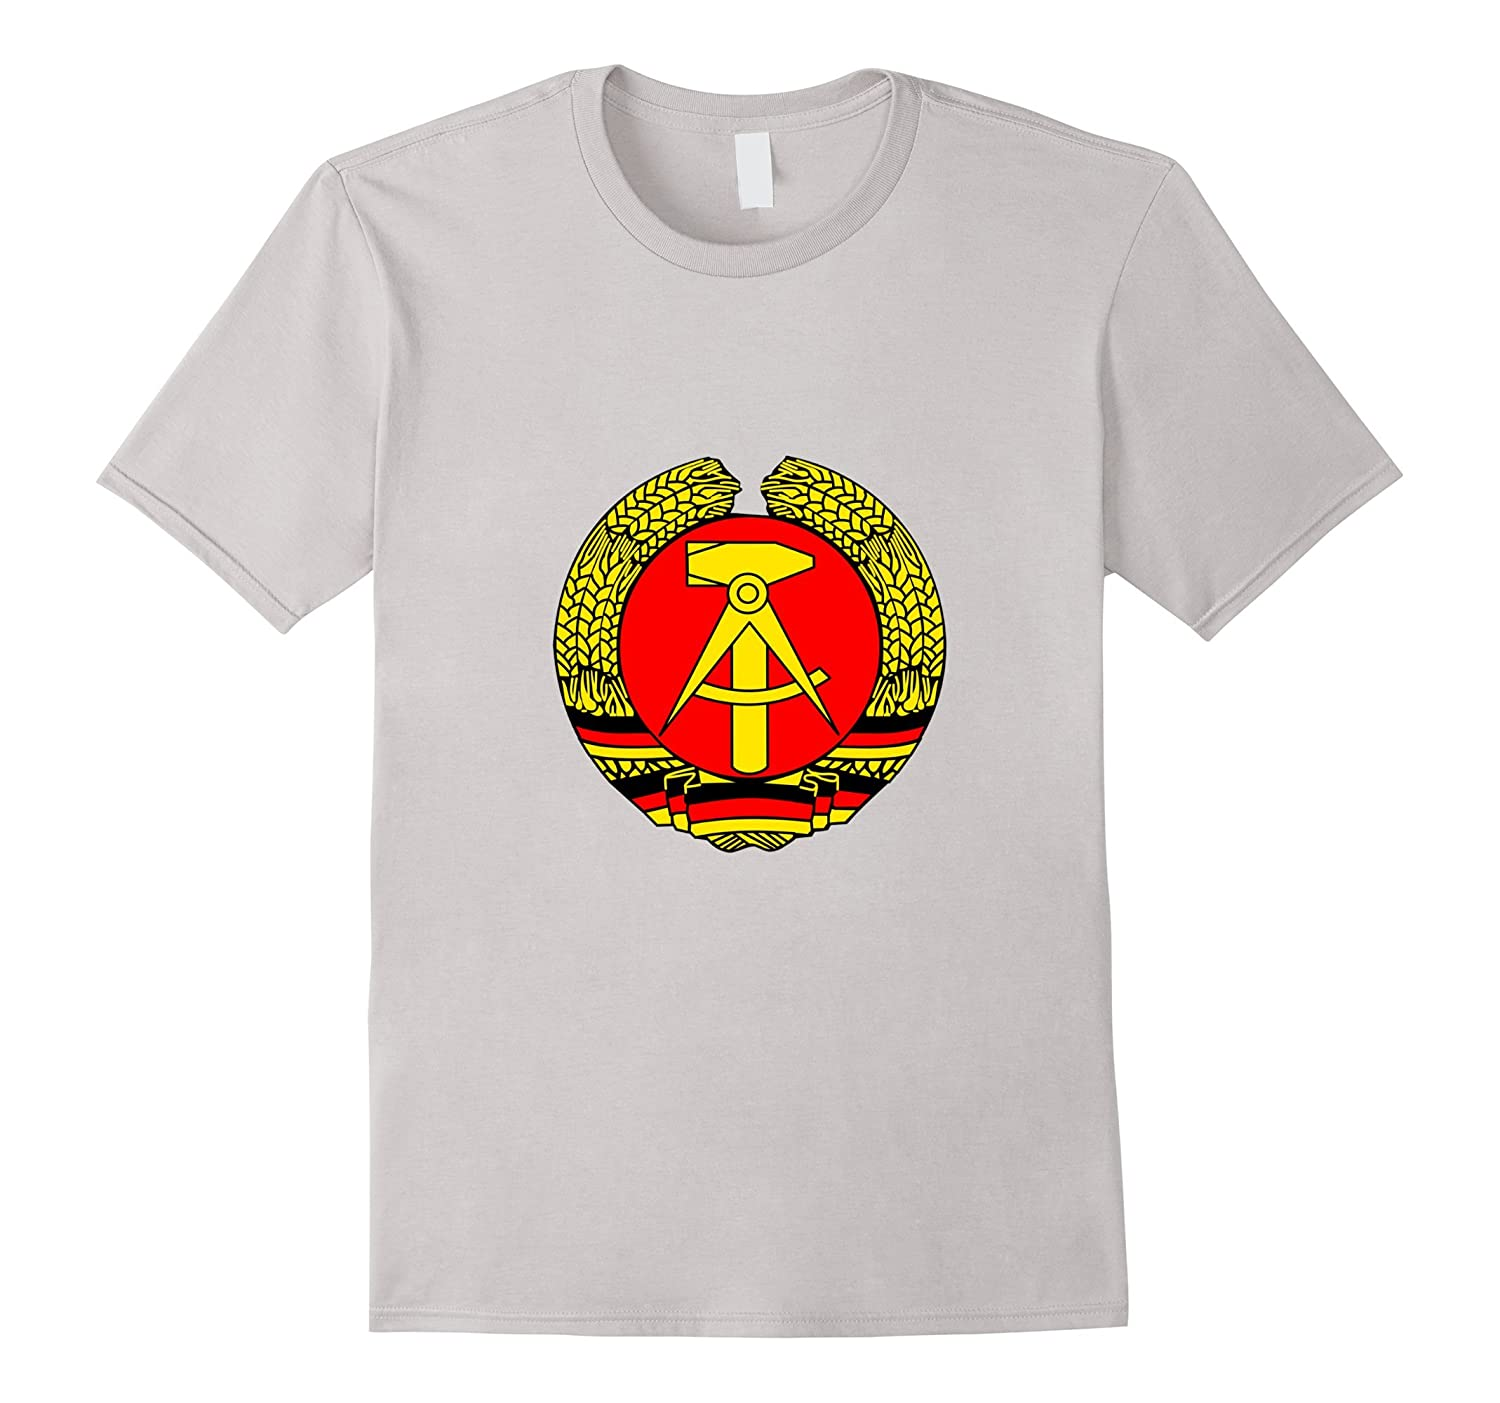 d6ac1f9a8fb DDR East Germany old Emblem symbol retro funny humor T-shirt-TD – Teedep